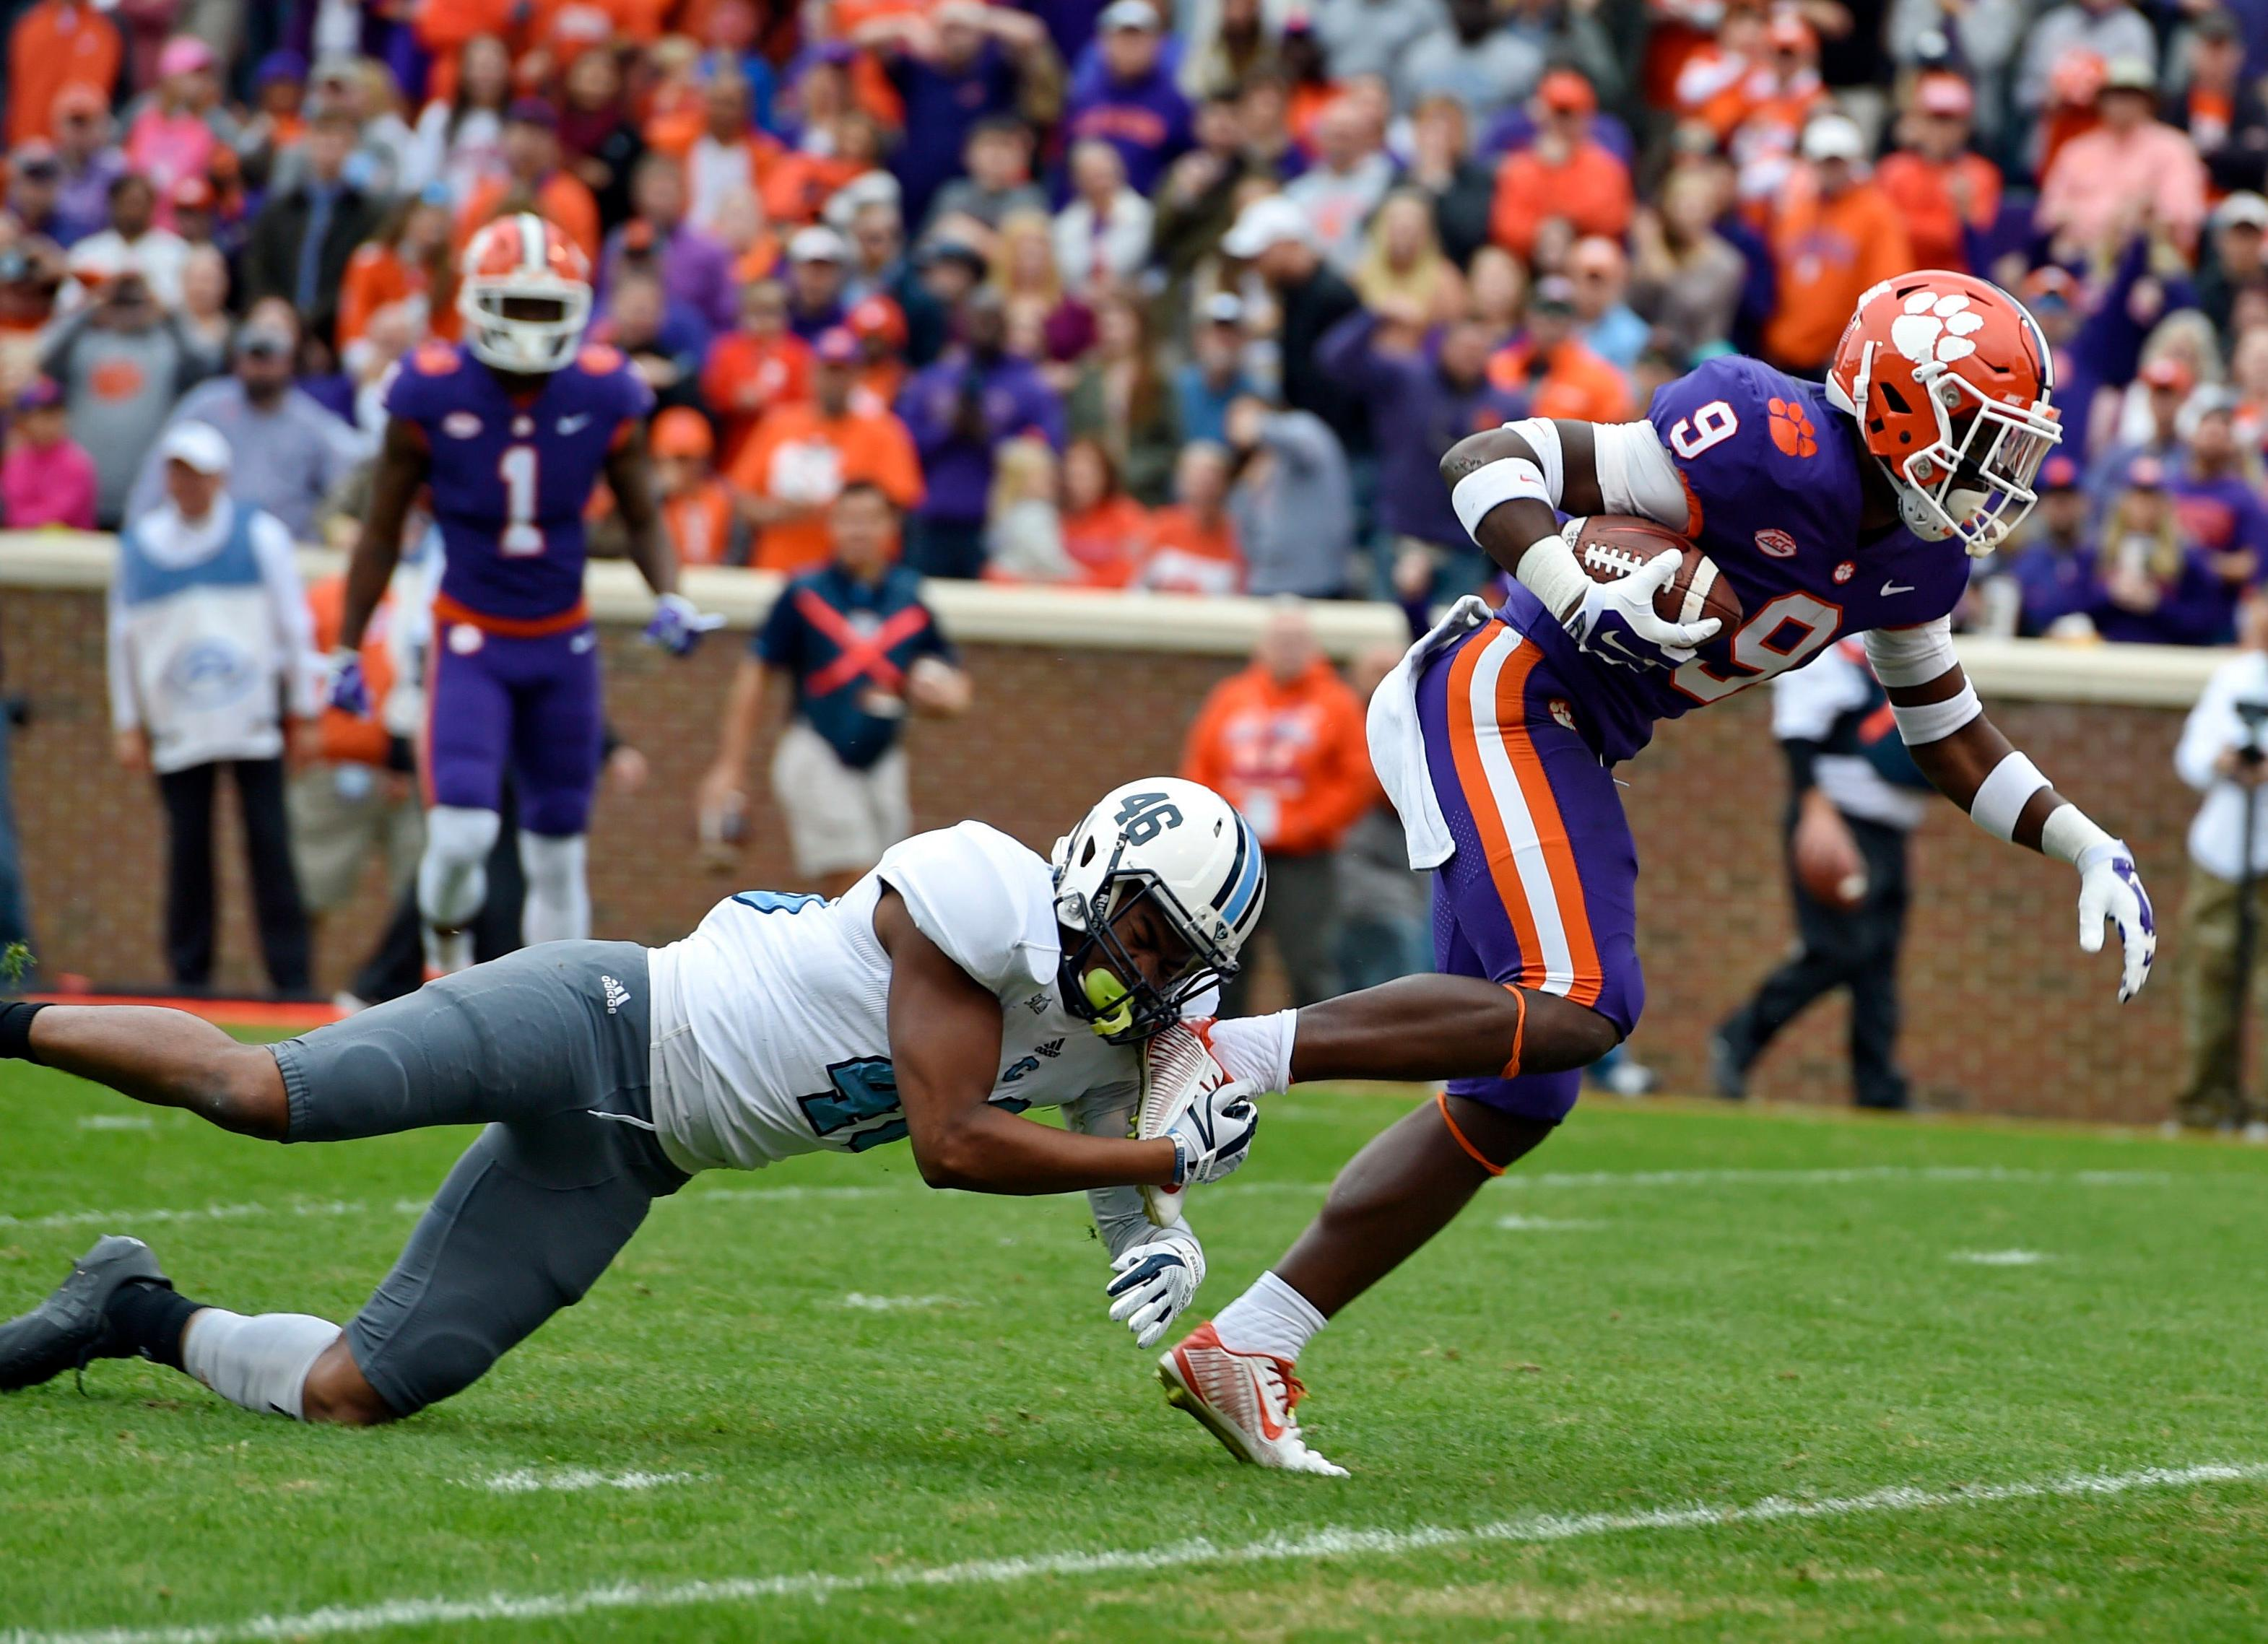 Clemson's Travis Etienne (9) slips the tackle attempt of Citadel's Carl Cunningham Jr. to score a touchdown during the first half of an NCAA college football game Saturday, Nov. 18, 2017, in Clemson, S.C. (AP Photo/Richard Shiro)